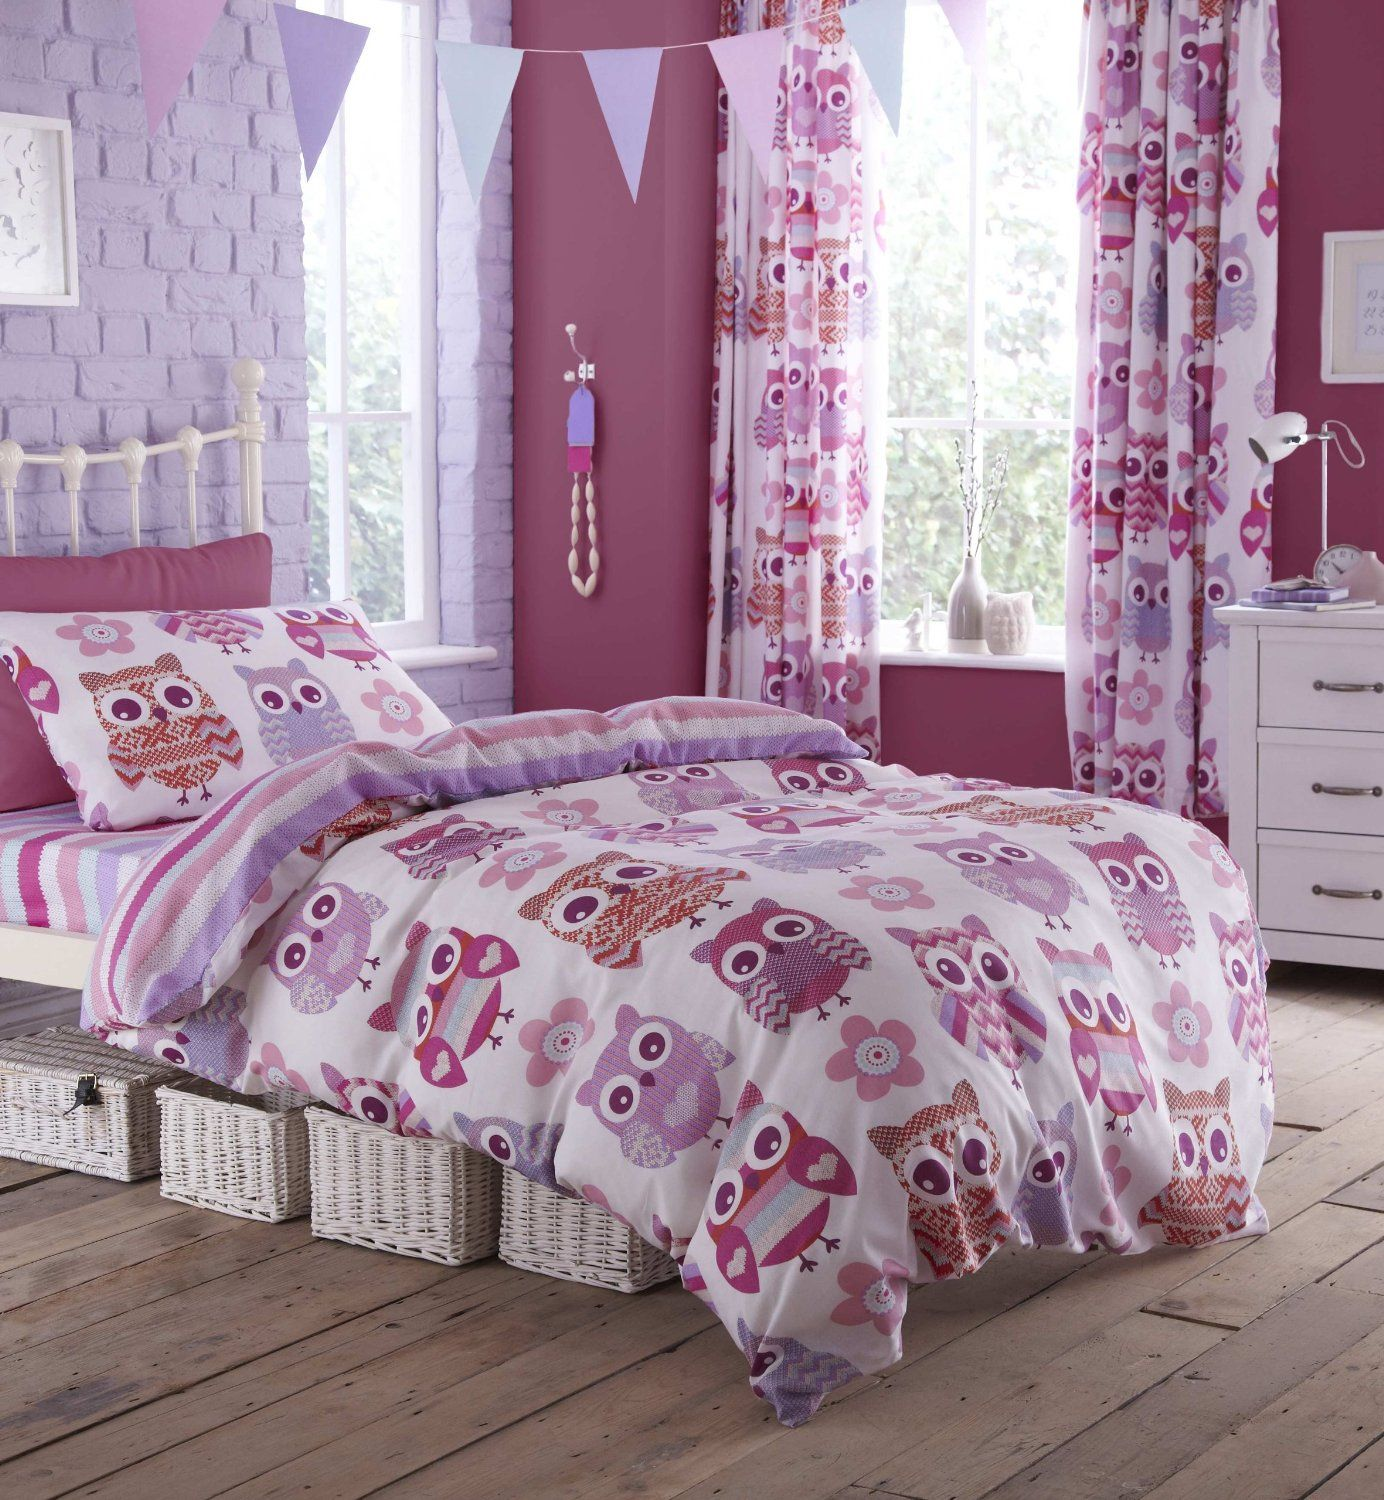 Colourful Print Catherine Lansfield Owl SINGLE Duvet Set This Single Duvet  Cover Fits A Standard Single Bed. It Is Manufactured From A Soft Cotton  Rich ... Design Ideas